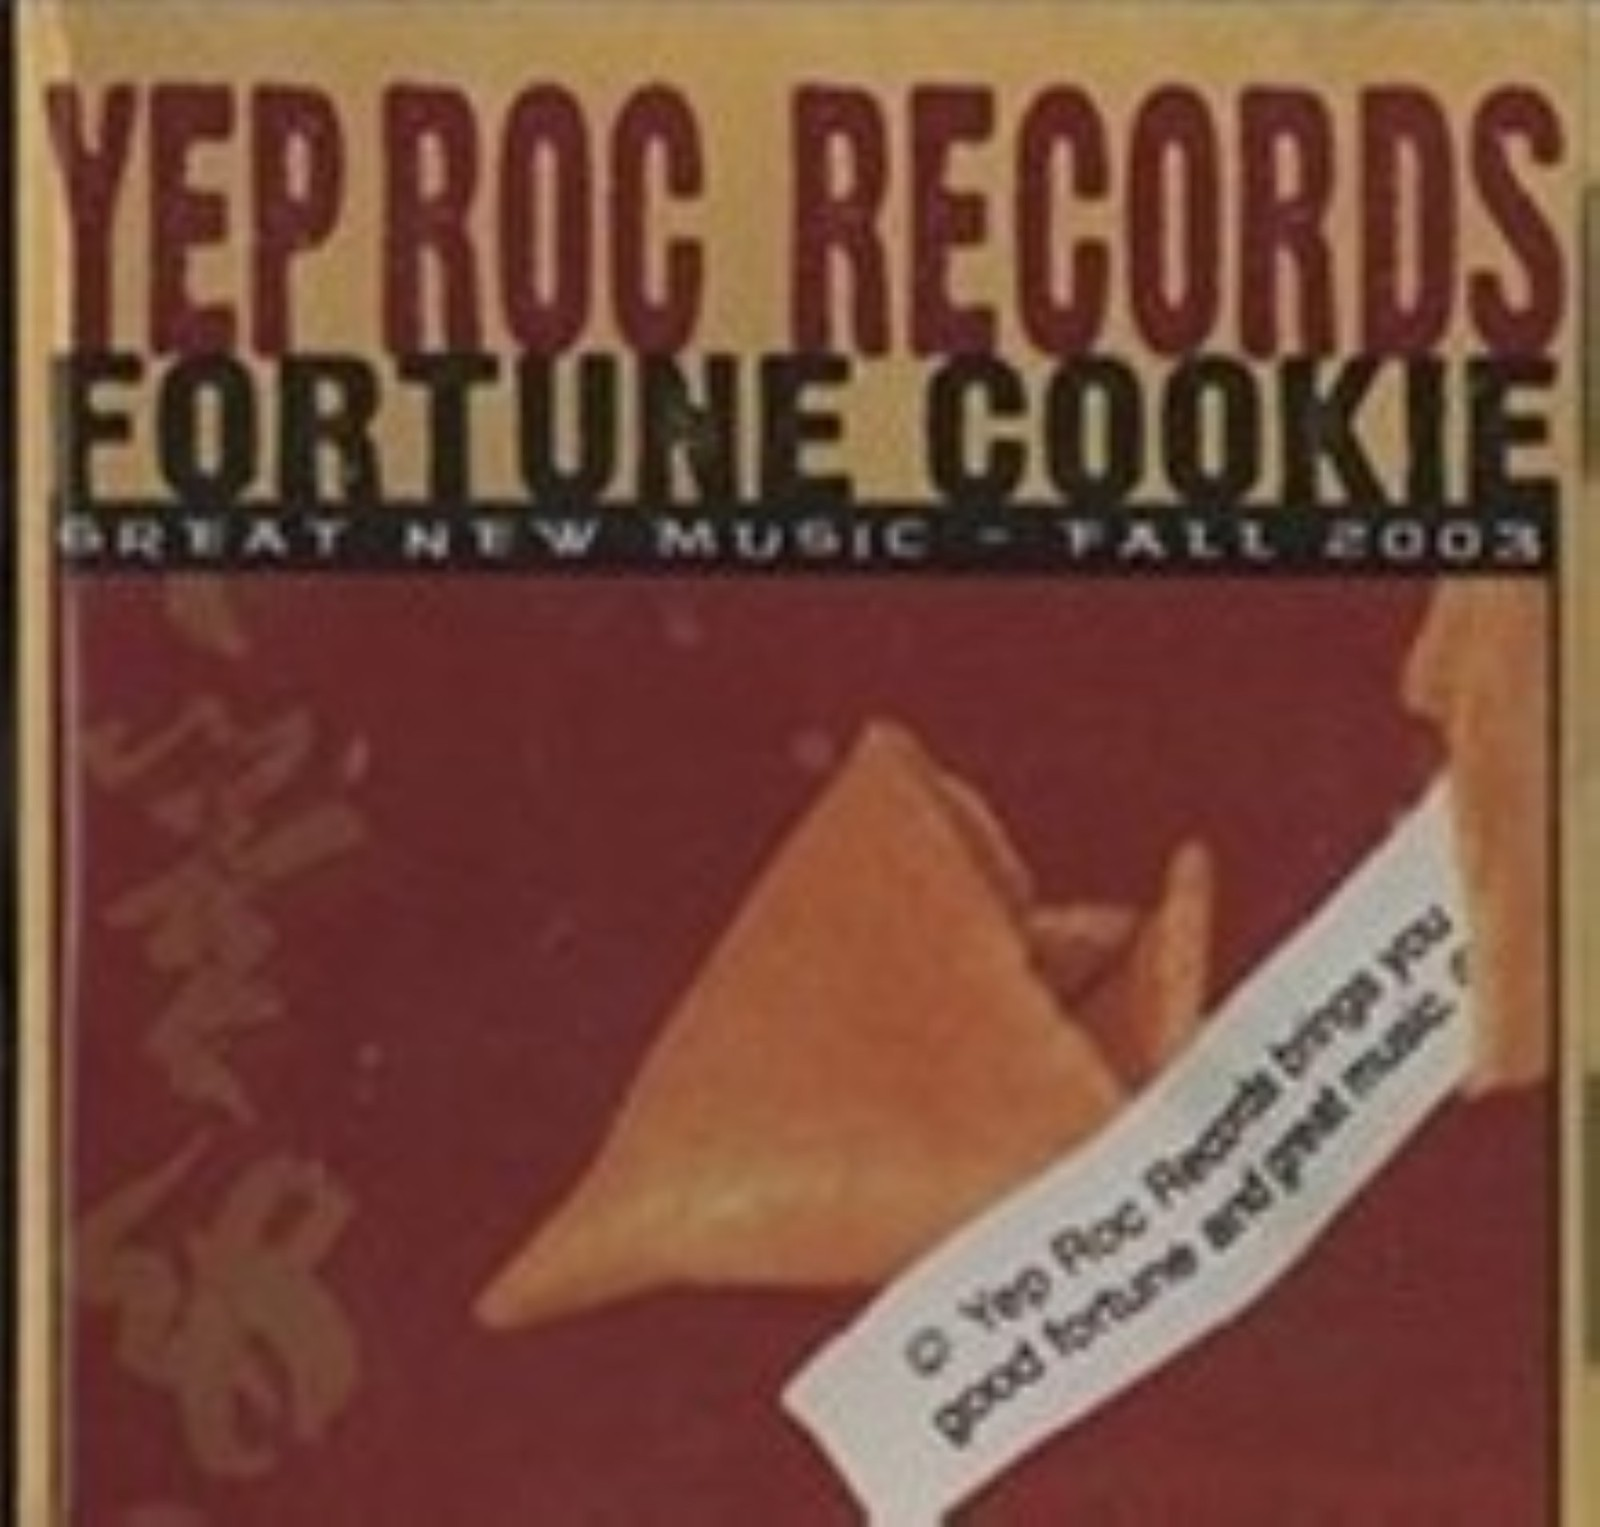 Yep Roc Records - Fortune Cookie 2 By Various Cd